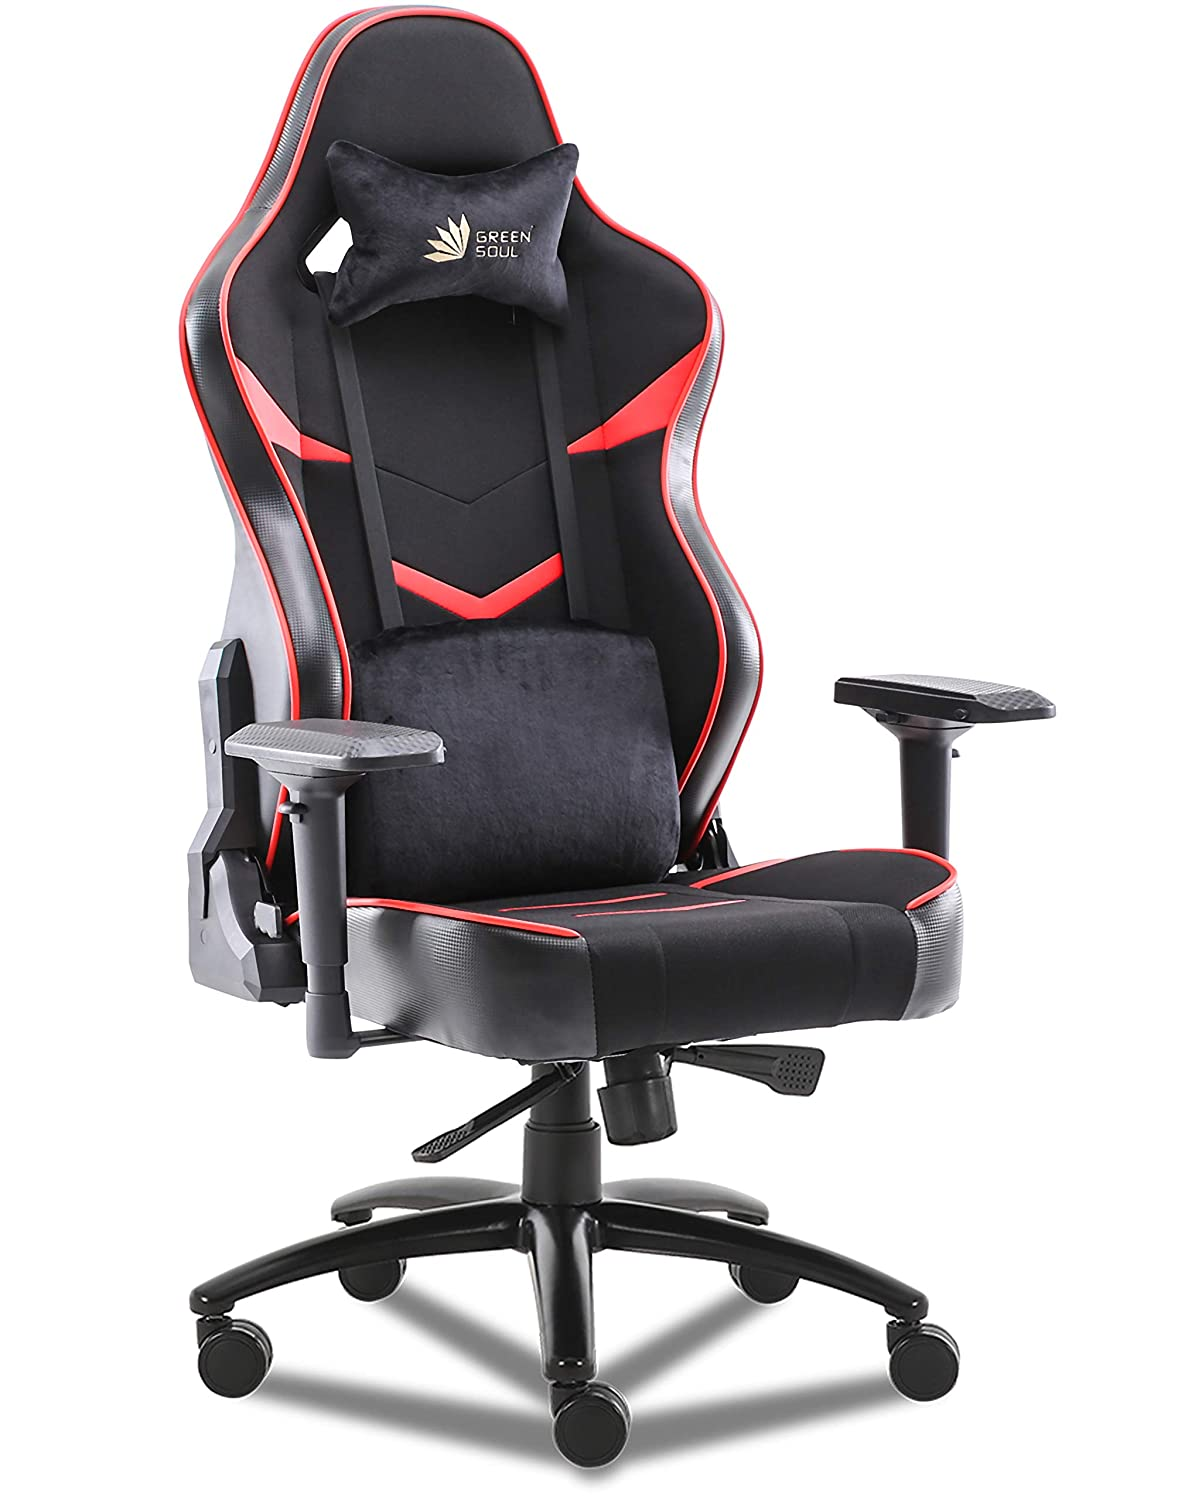 Top 5 Best Gaming Chairs in India - grabitonce.in